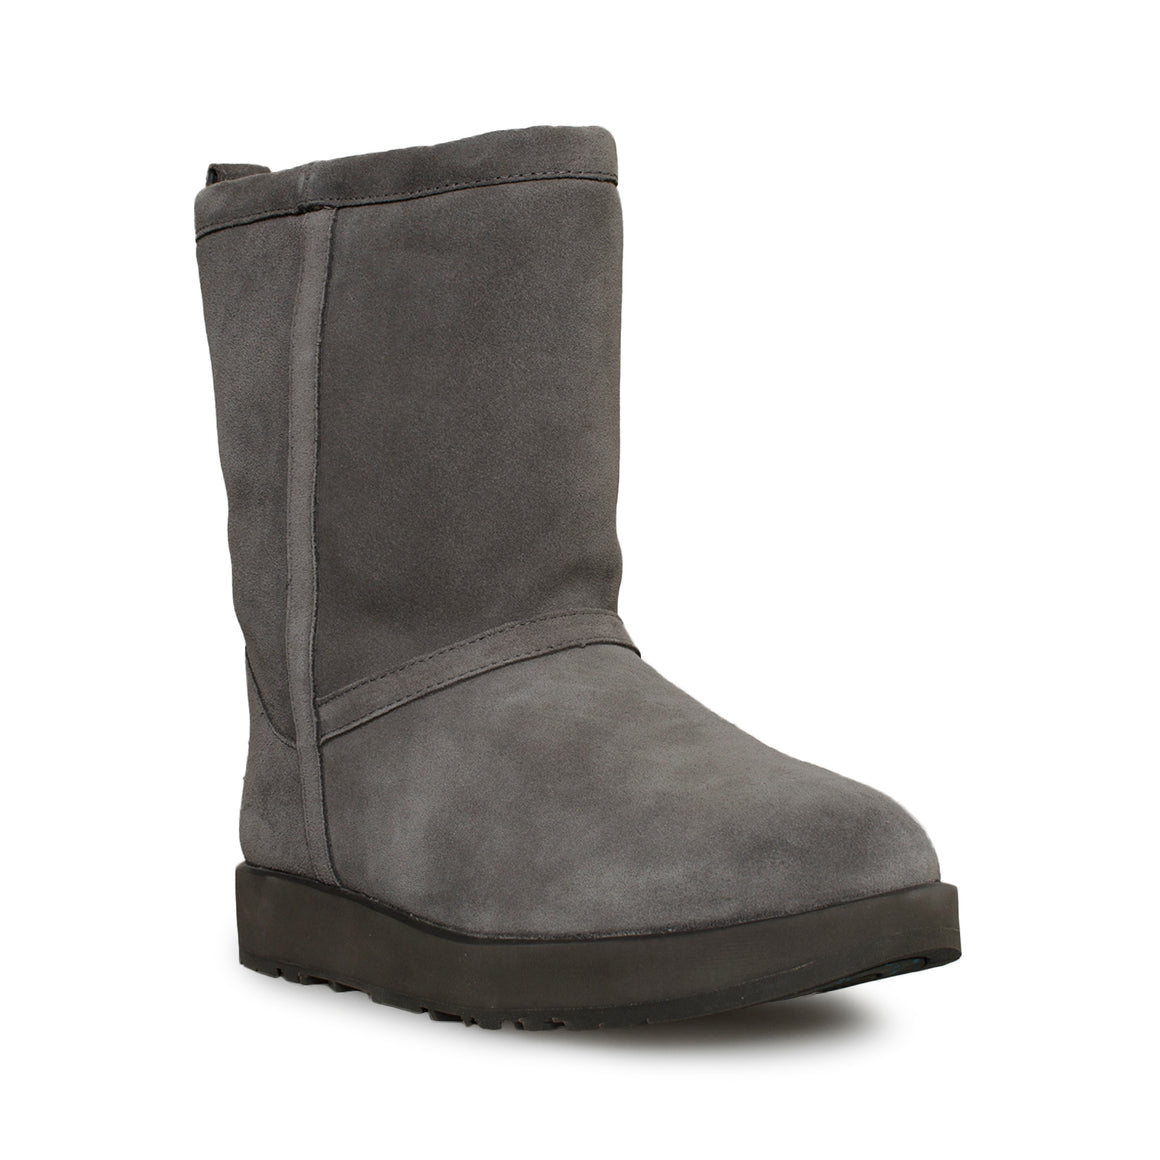 UGG Classic Short Waterproof Metal Boots